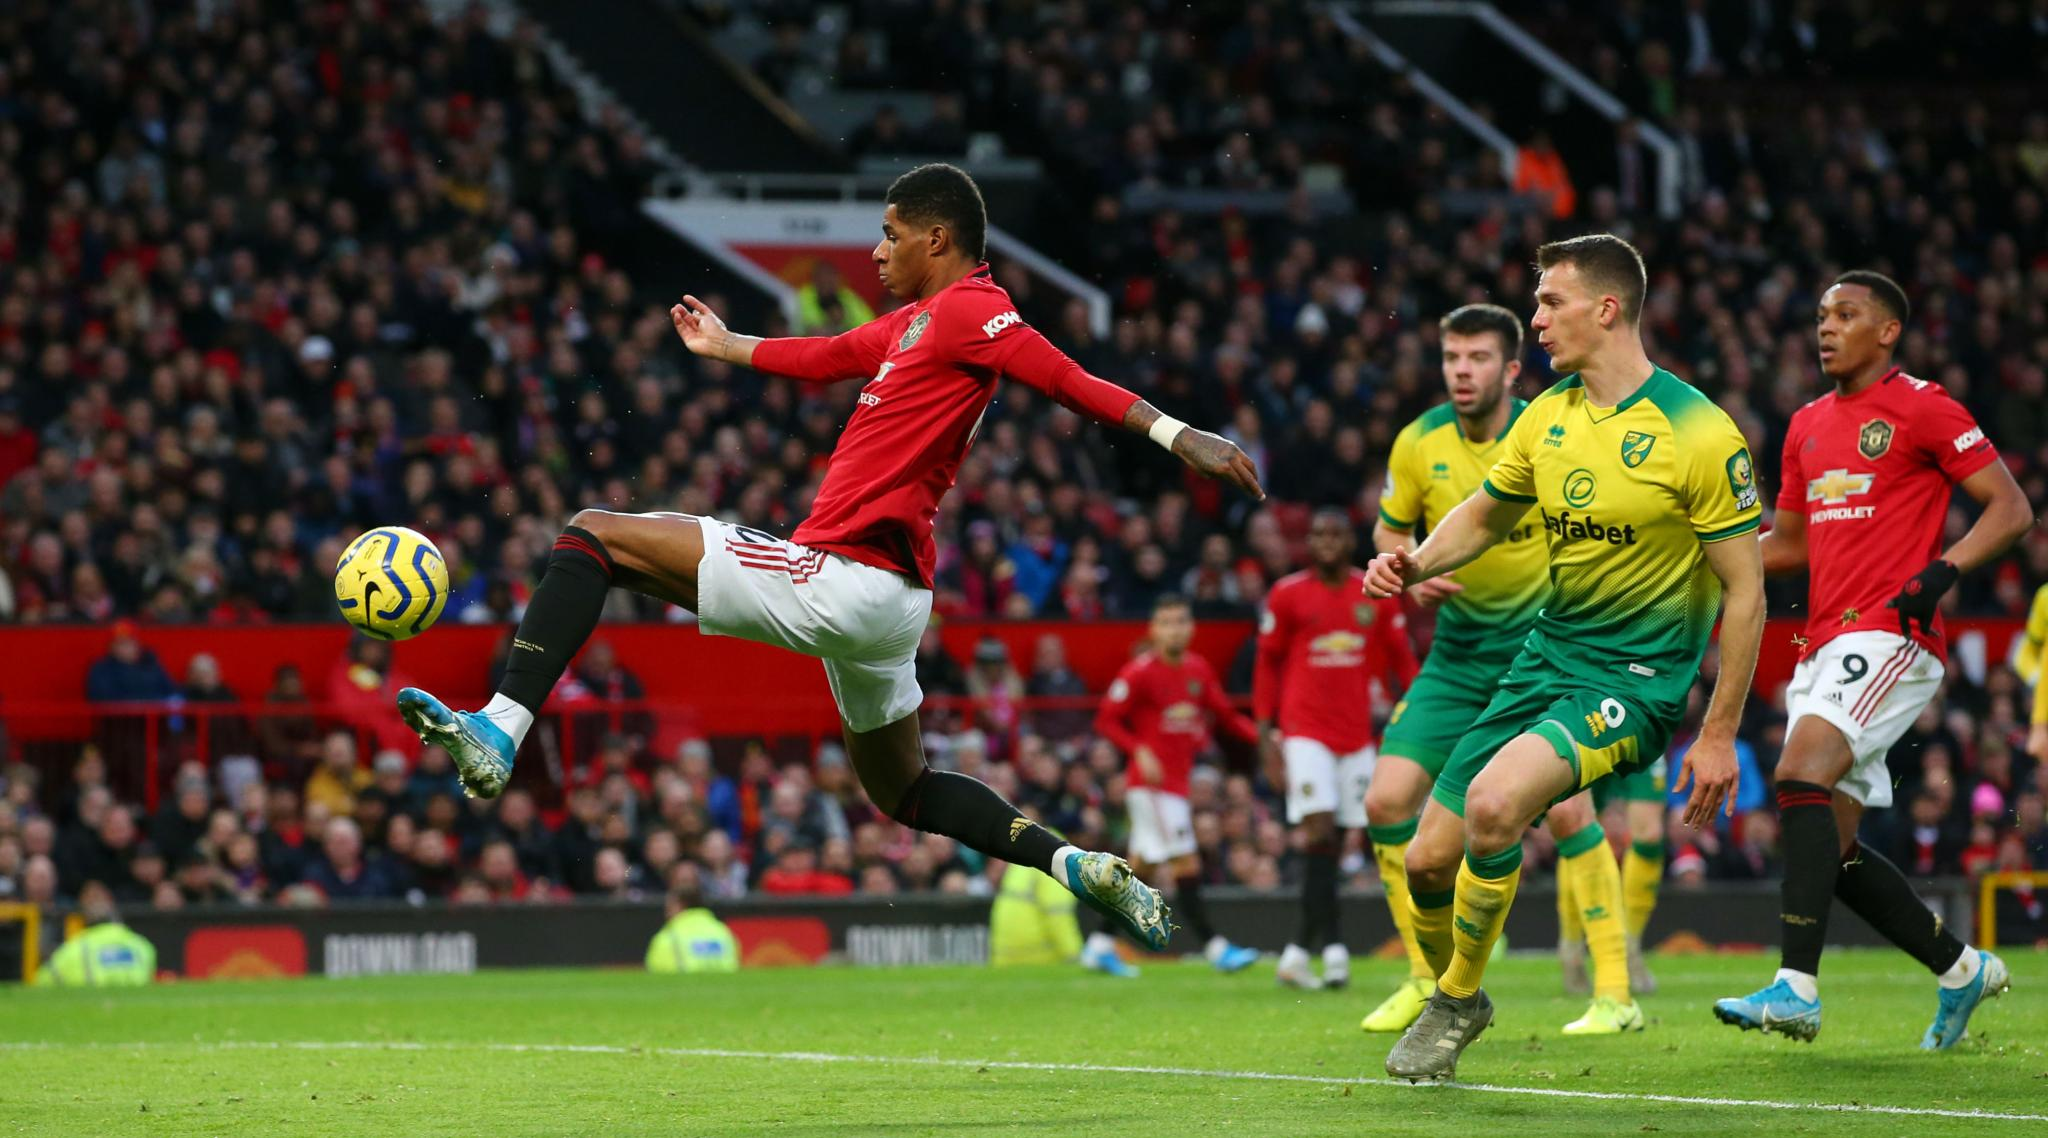 Manchester United 4-0 Norwich, Premier League 2019-20 Result: Marcus Rashford Double on 200th Appearance Helps Man United Smash Canaries